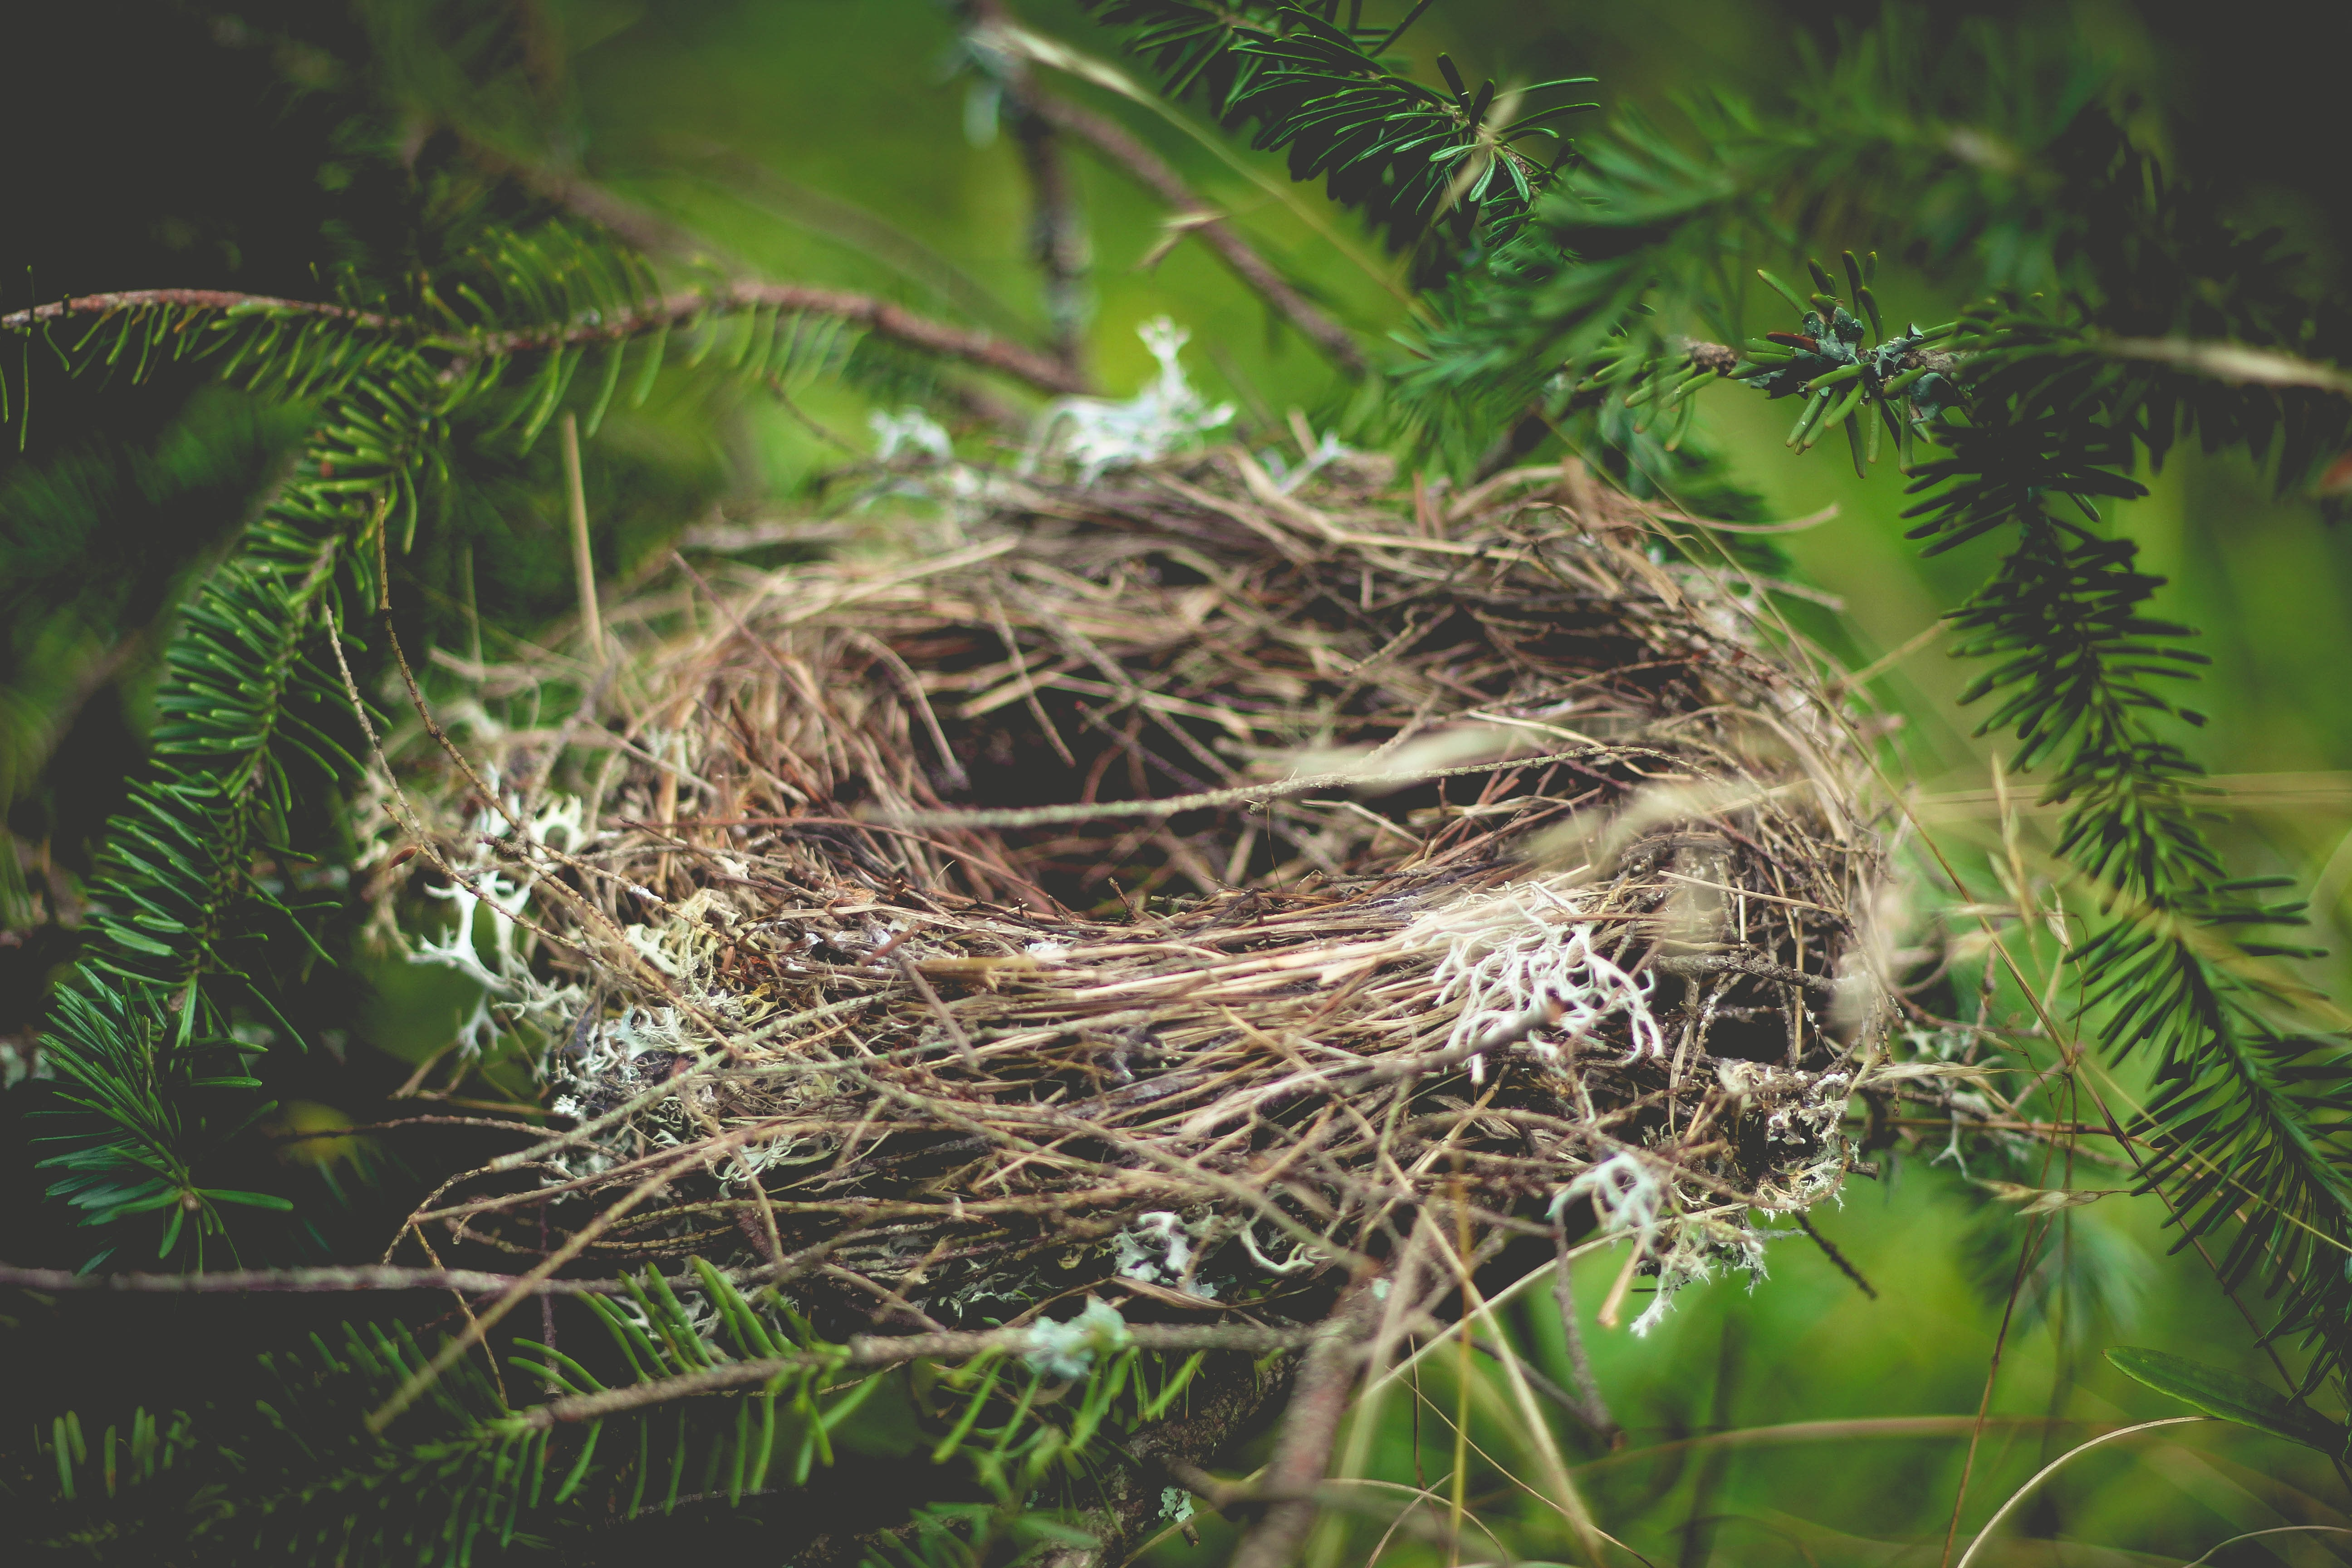 Empty bird nest with twigs and yarn in a pine tree